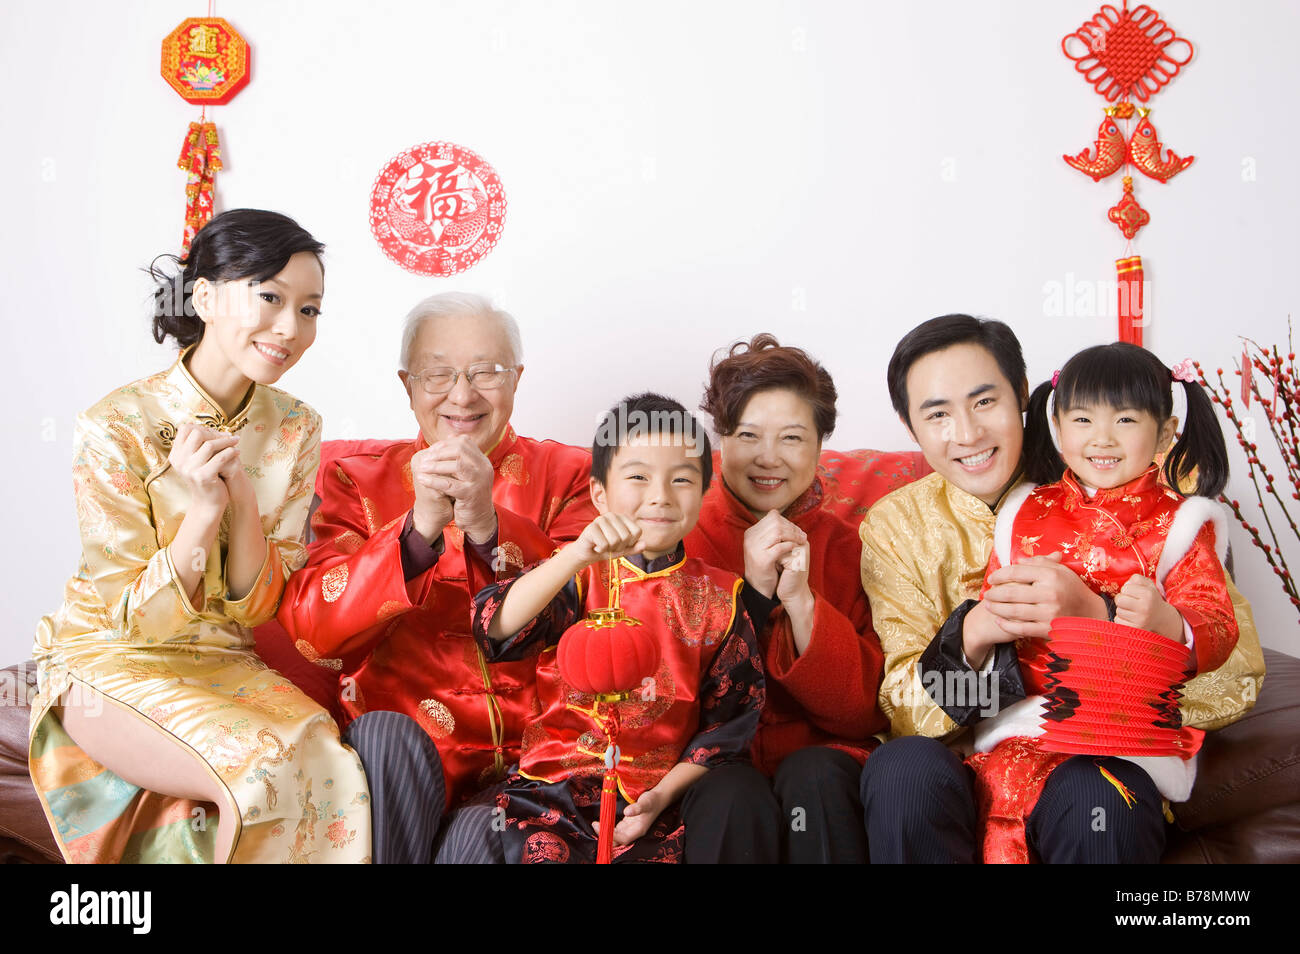 family members in traditional clothes celebrating chinese new year stock photo royalty free. Black Bedroom Furniture Sets. Home Design Ideas